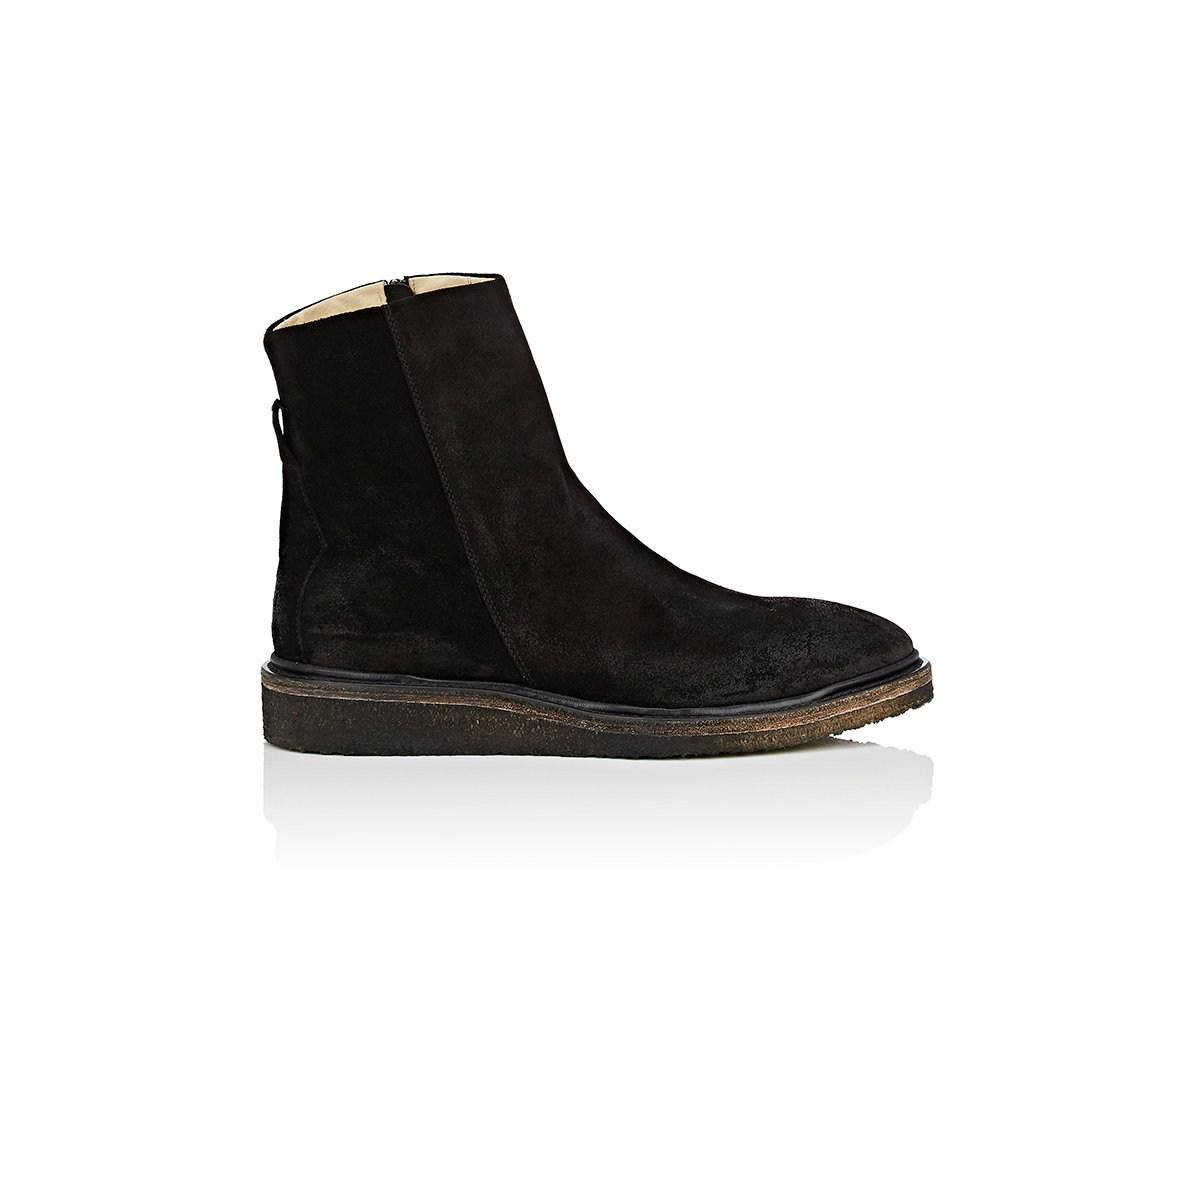 30454b185c96 Barneys New York - Black Crepe-sole Oiled Suede Boots for Men - Lyst. View  fullscreen